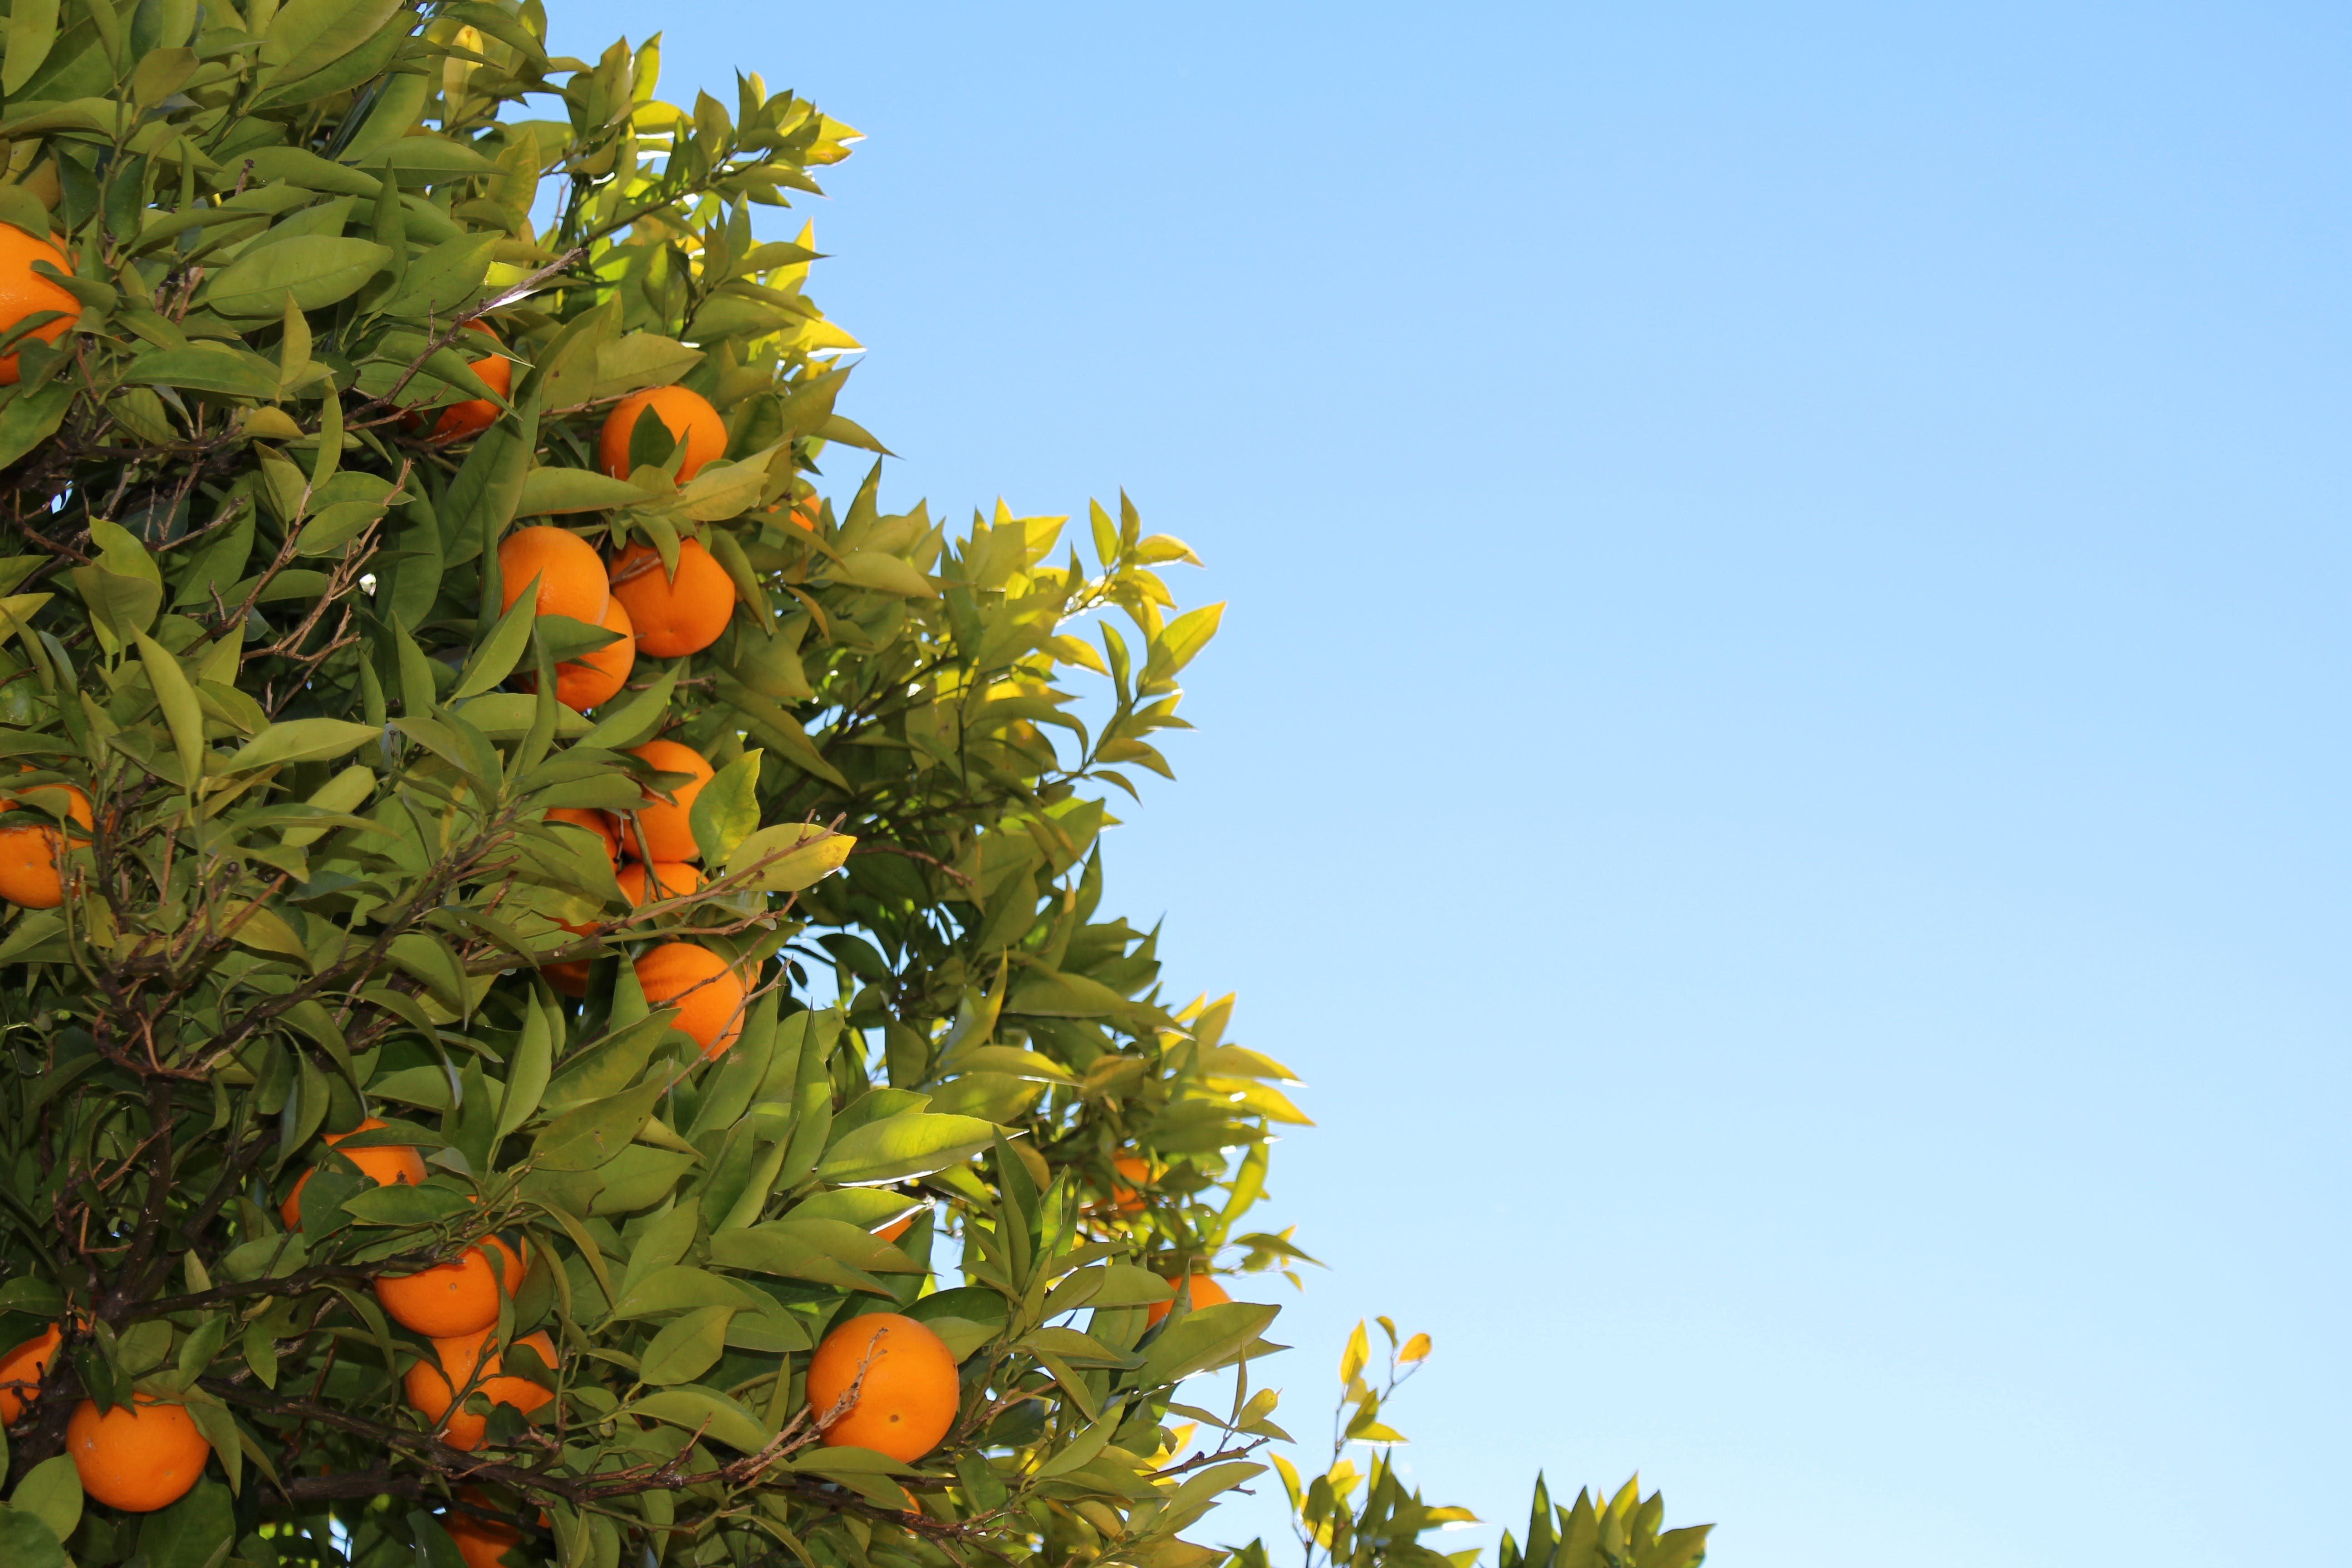 Free stock photo of sky, blue, fruits, leaves